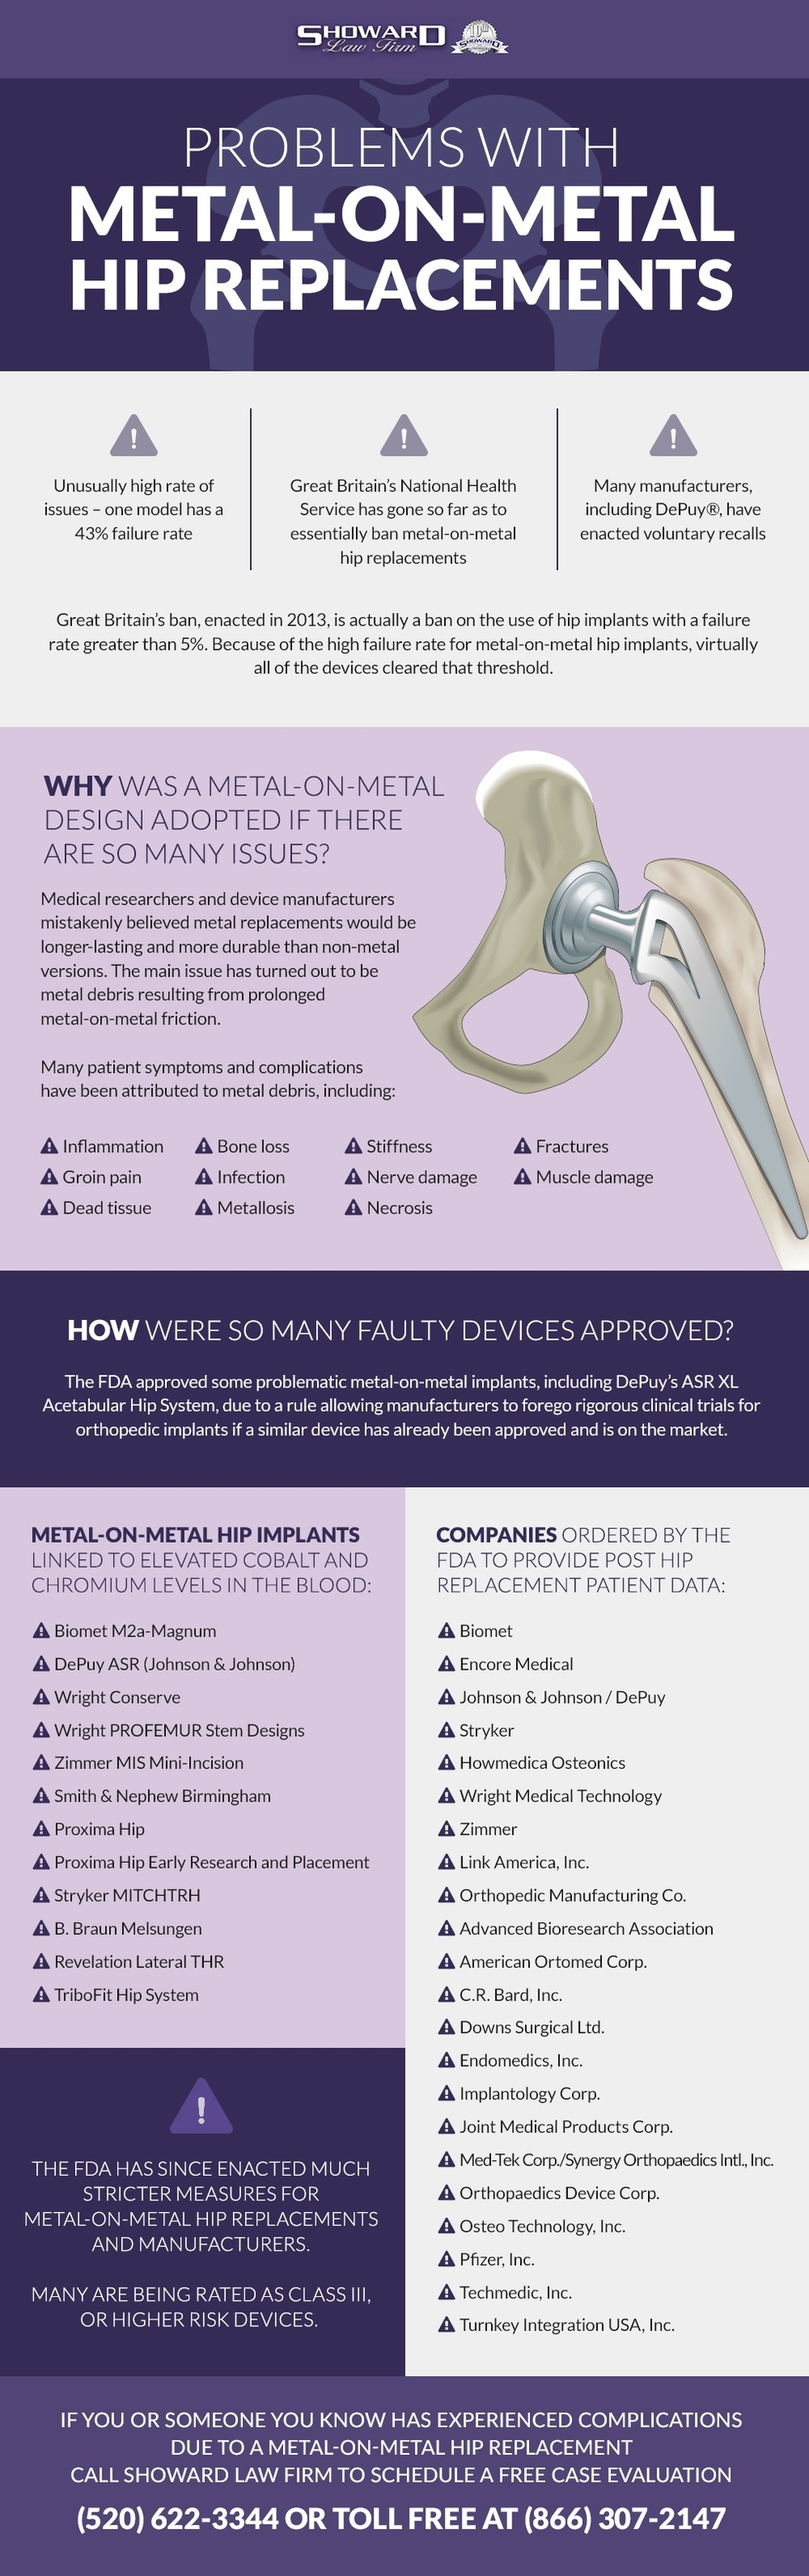 Infographic about Problems That Occur with Metal-on-Metal Hip Replacements